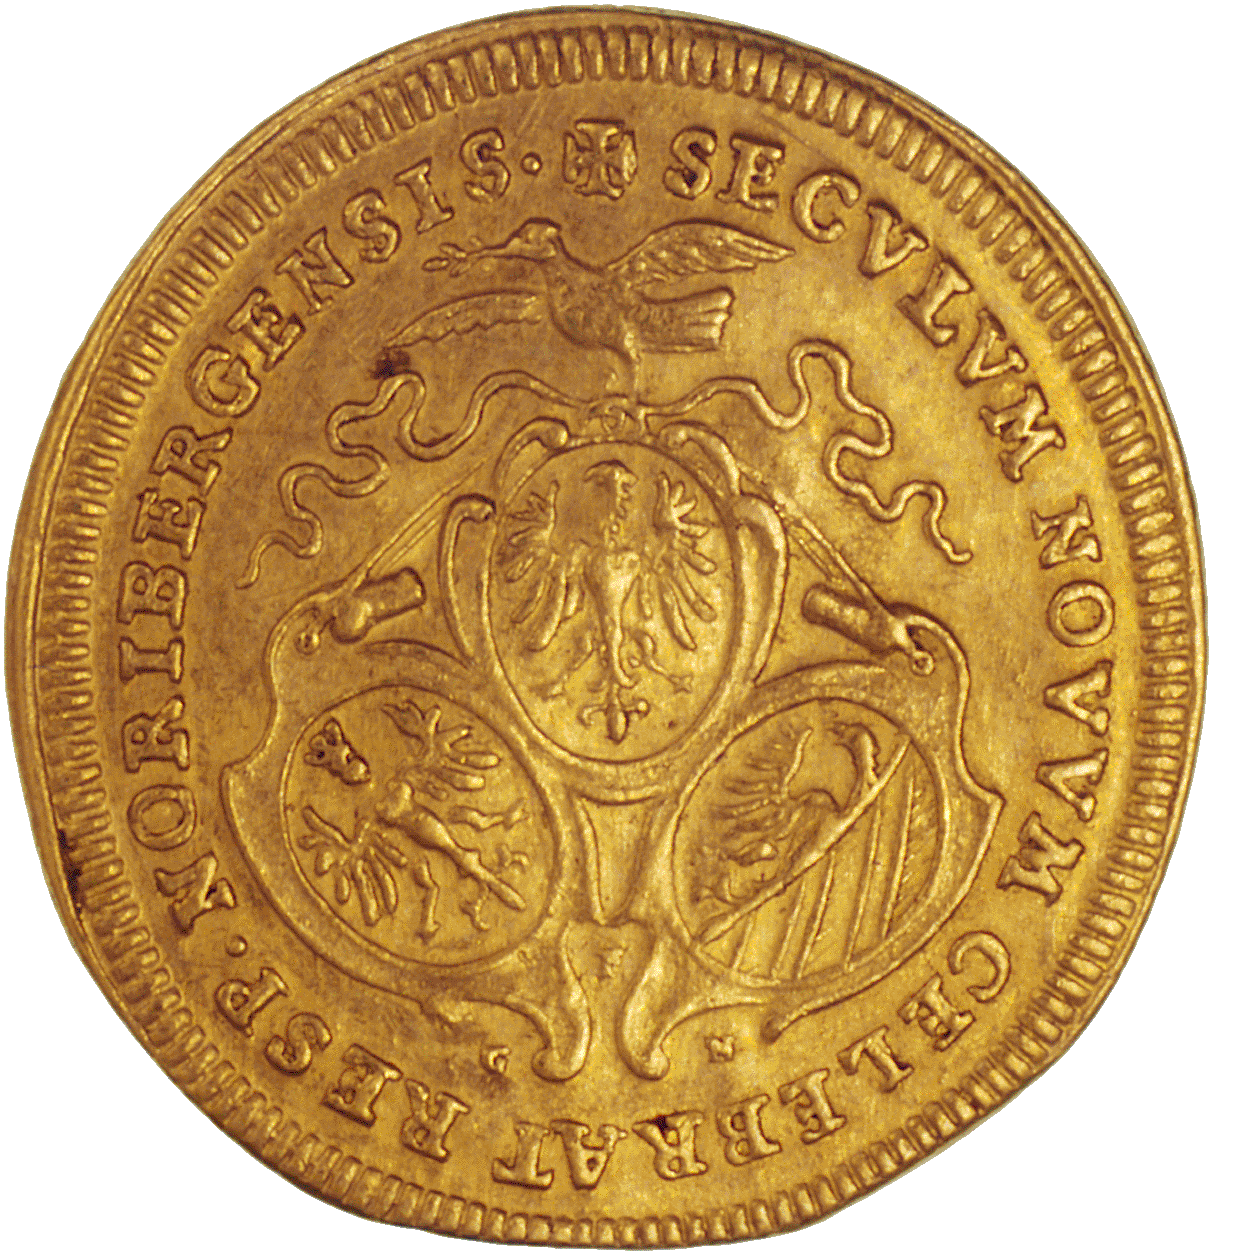 Holy Roman Empire, City of Nuremberg, Ducat (obverse)